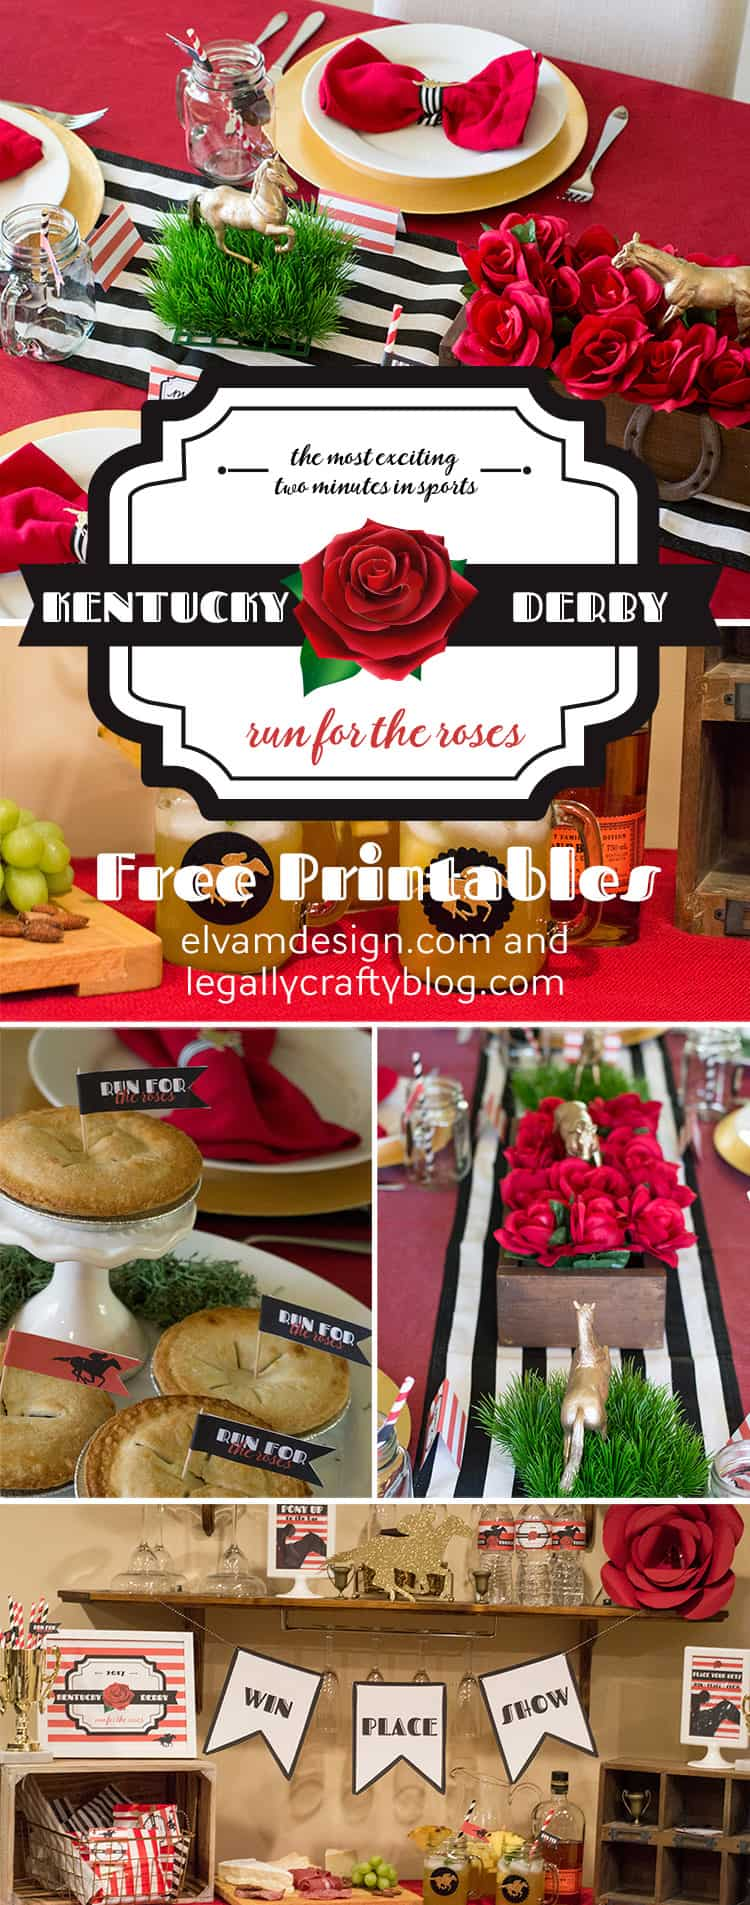 Check out this Kentucky Derby Party and download your free printables at Elva M Design Studio (elvamdesign.com)